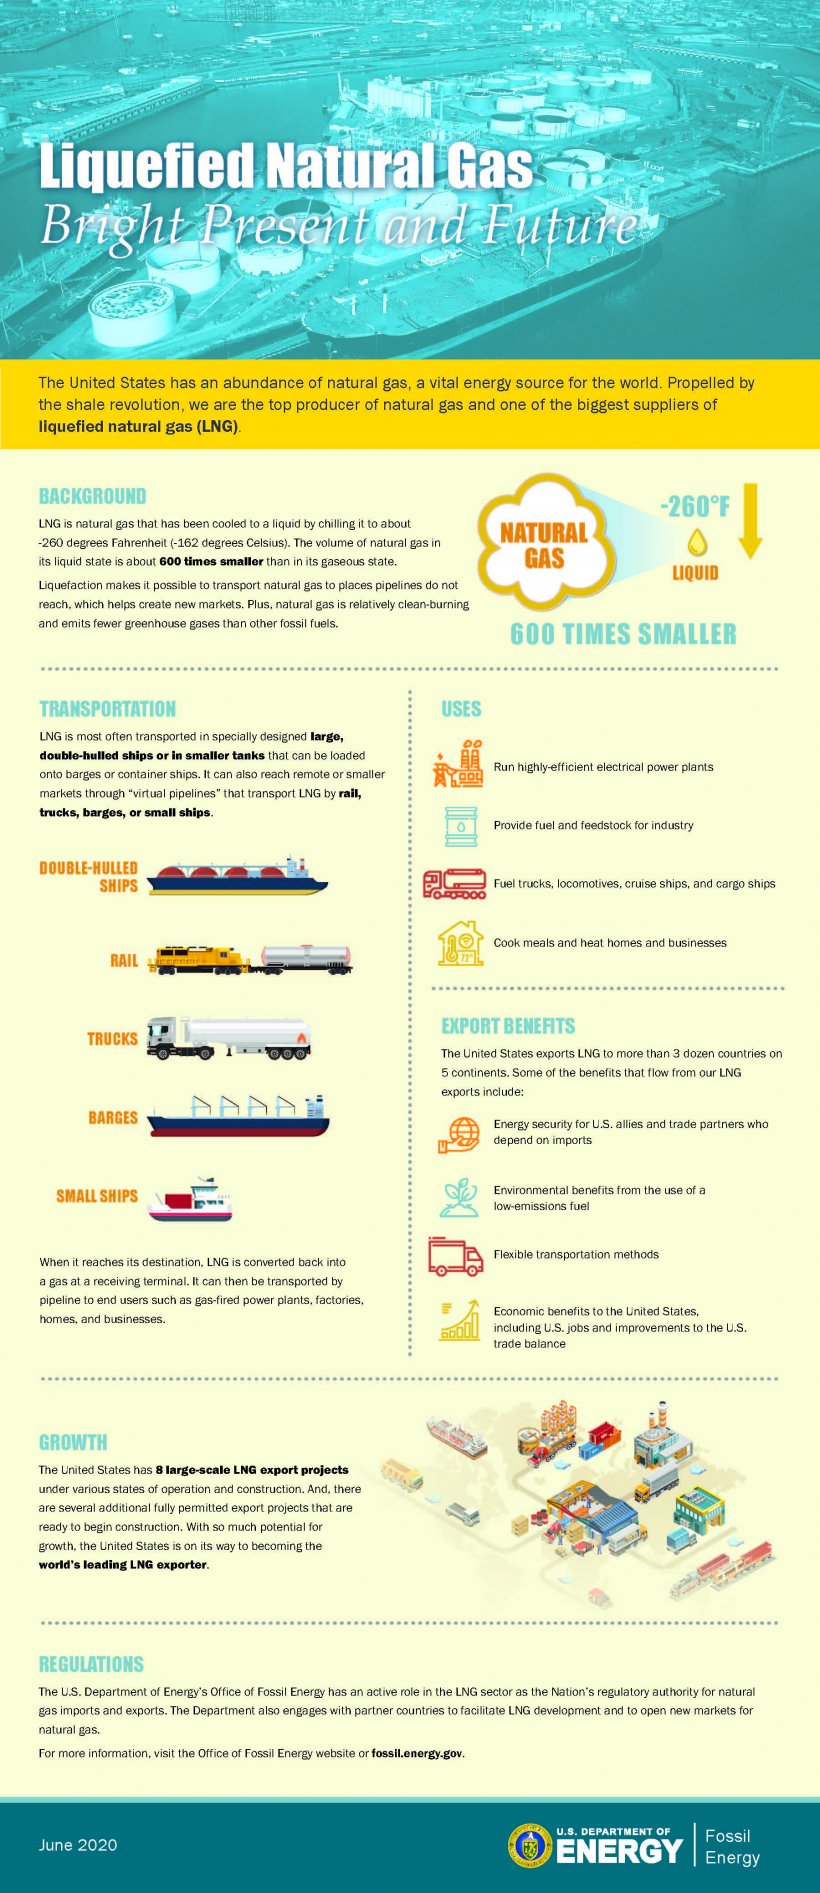 Liquefied Natural Gas Infographic